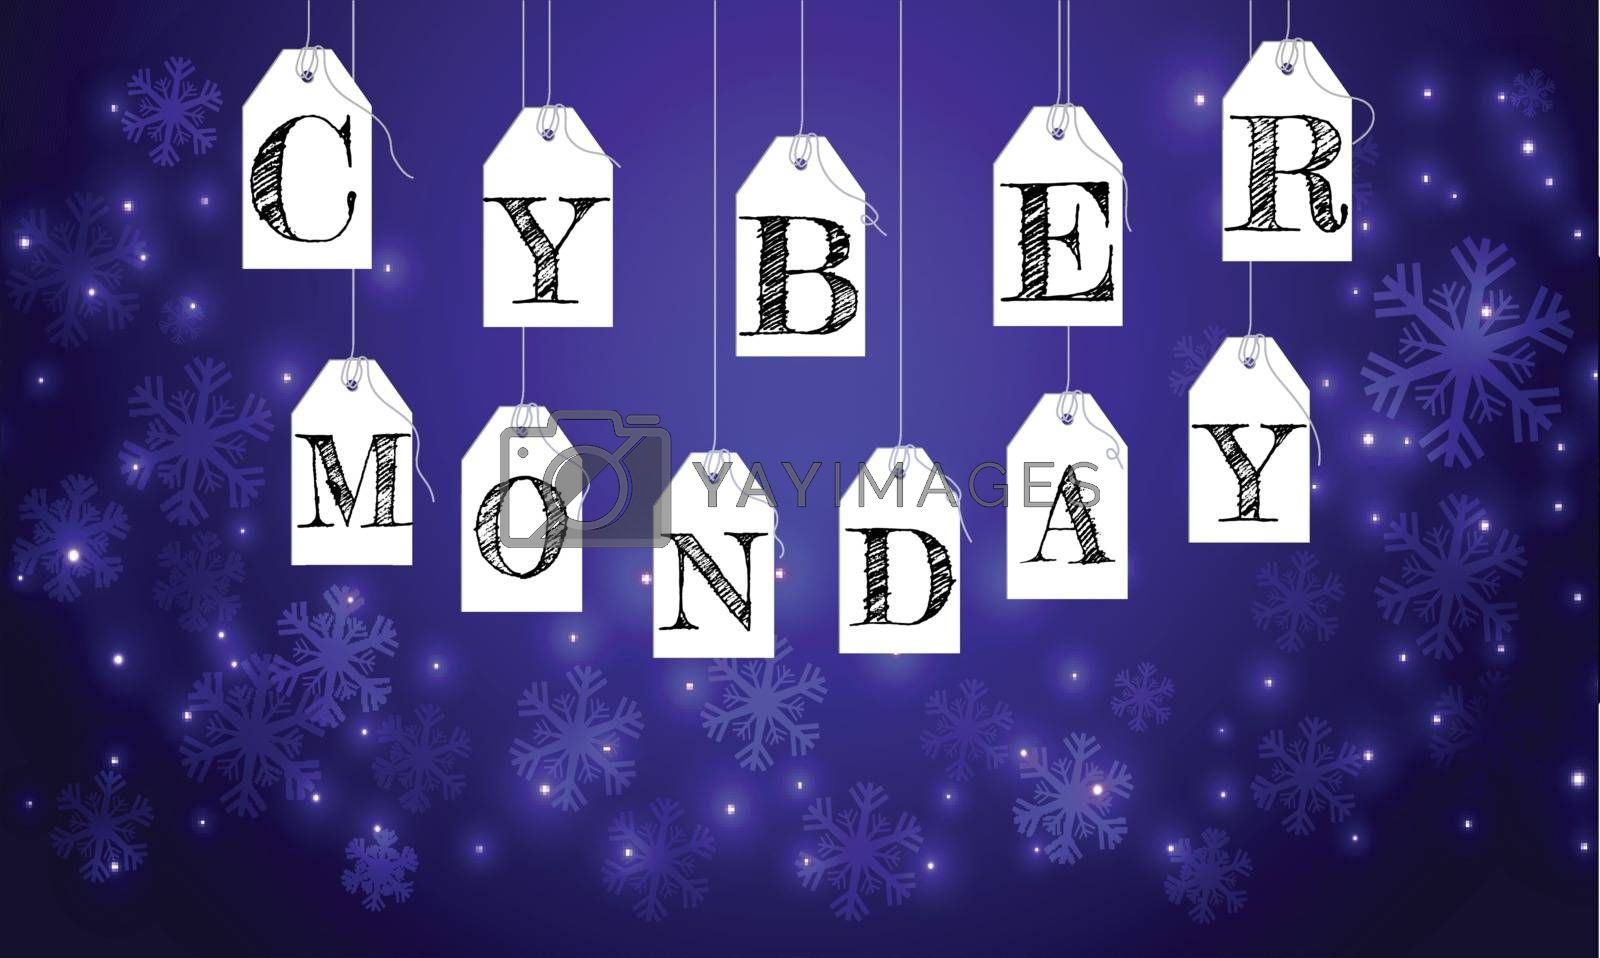 Sale tags hang on glowing blue background with lettering of Cyber Monday, can be used as advertising poster or banner design.